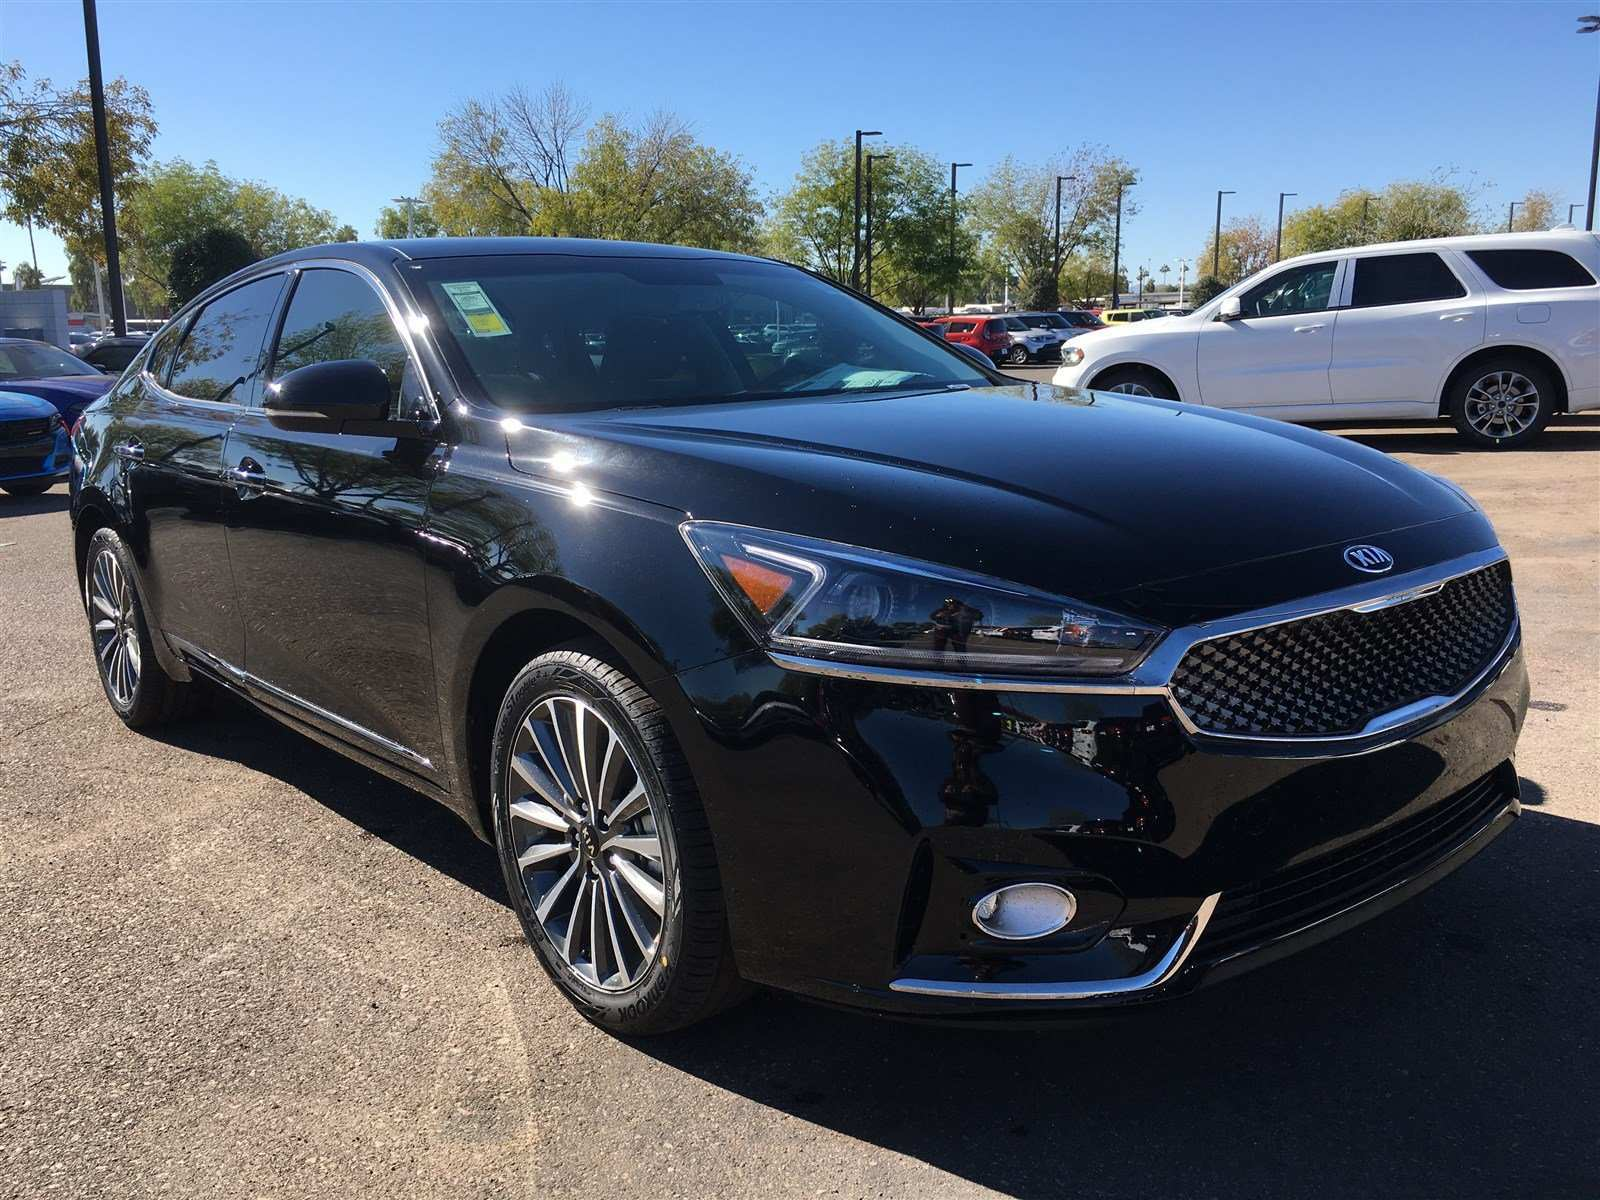 70 The Best 2019 All Kia Cadenza Pictures